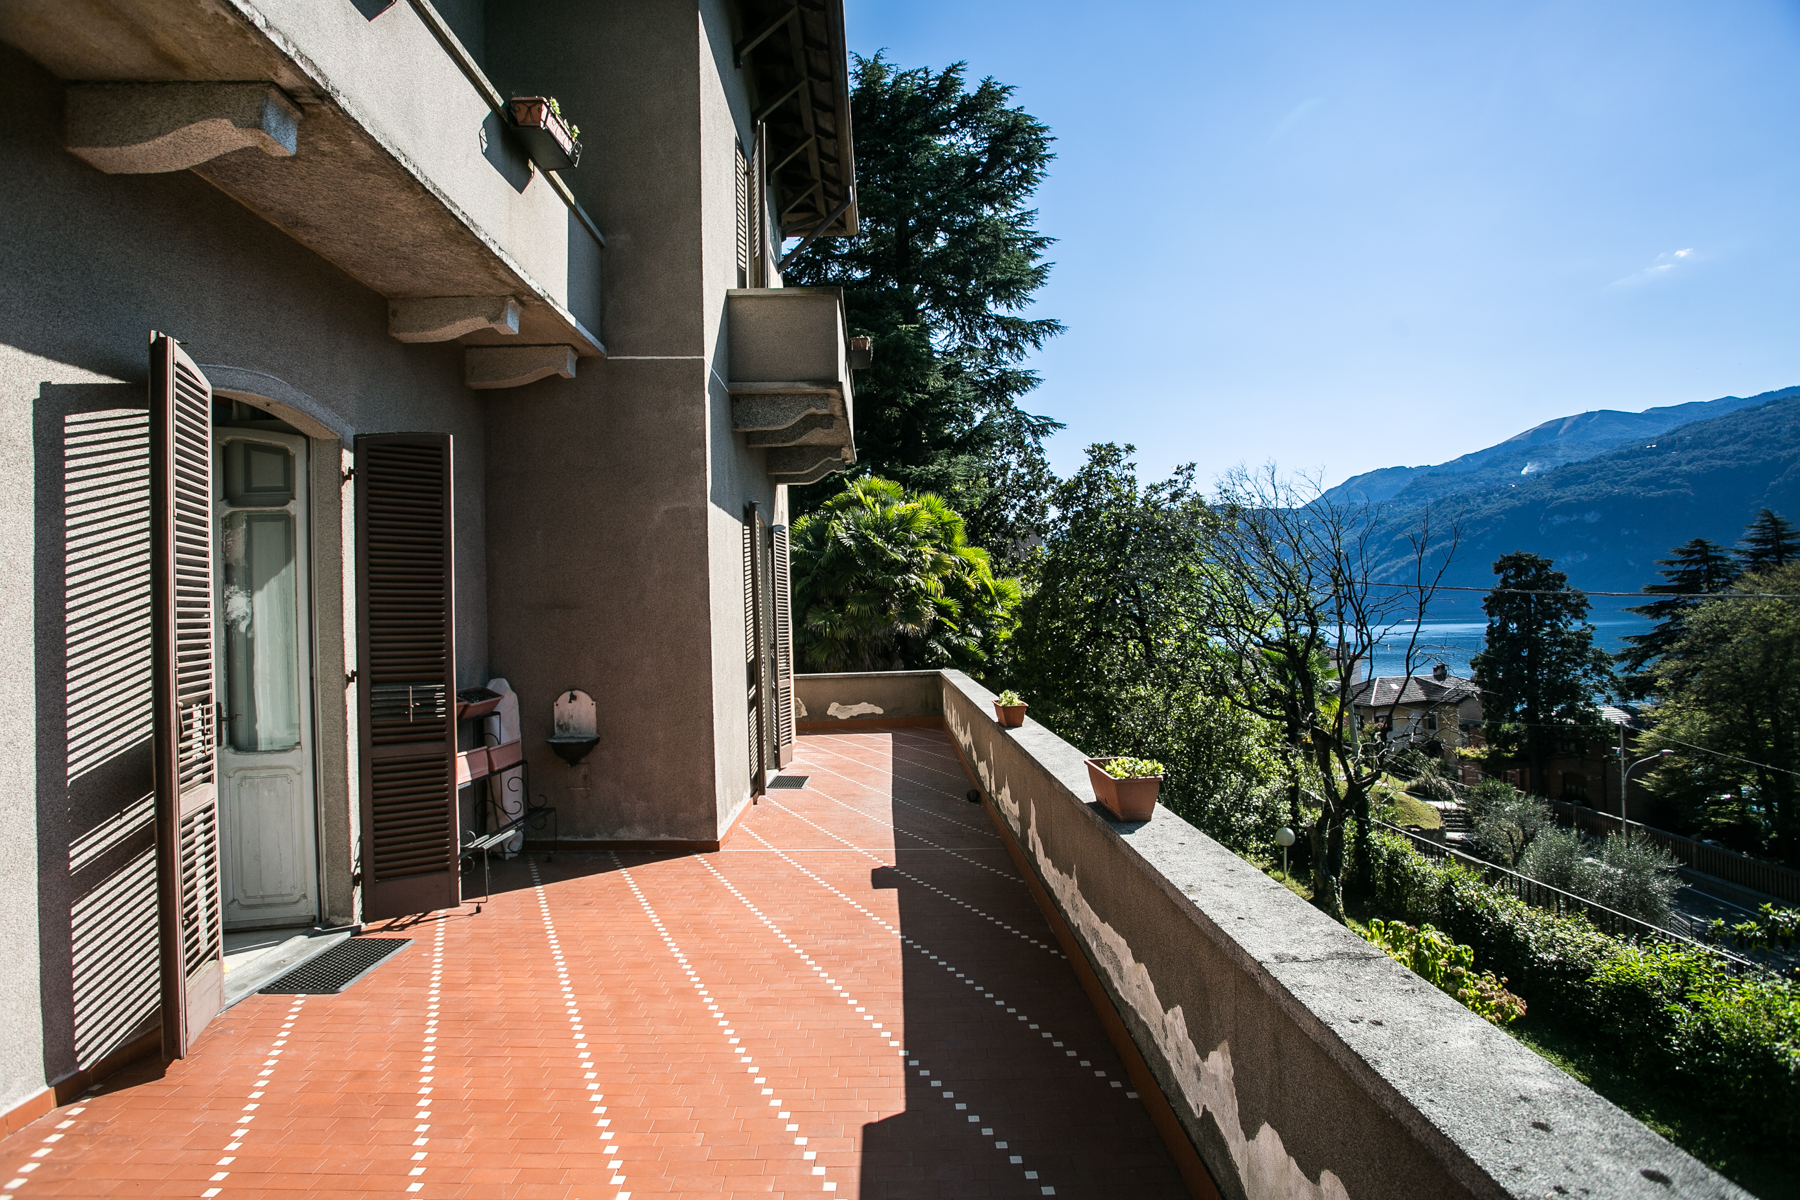 Additional photo for property listing at Splendid villa of the first years of '900 Via Ducale Lierna, Lecco 23827 Italia